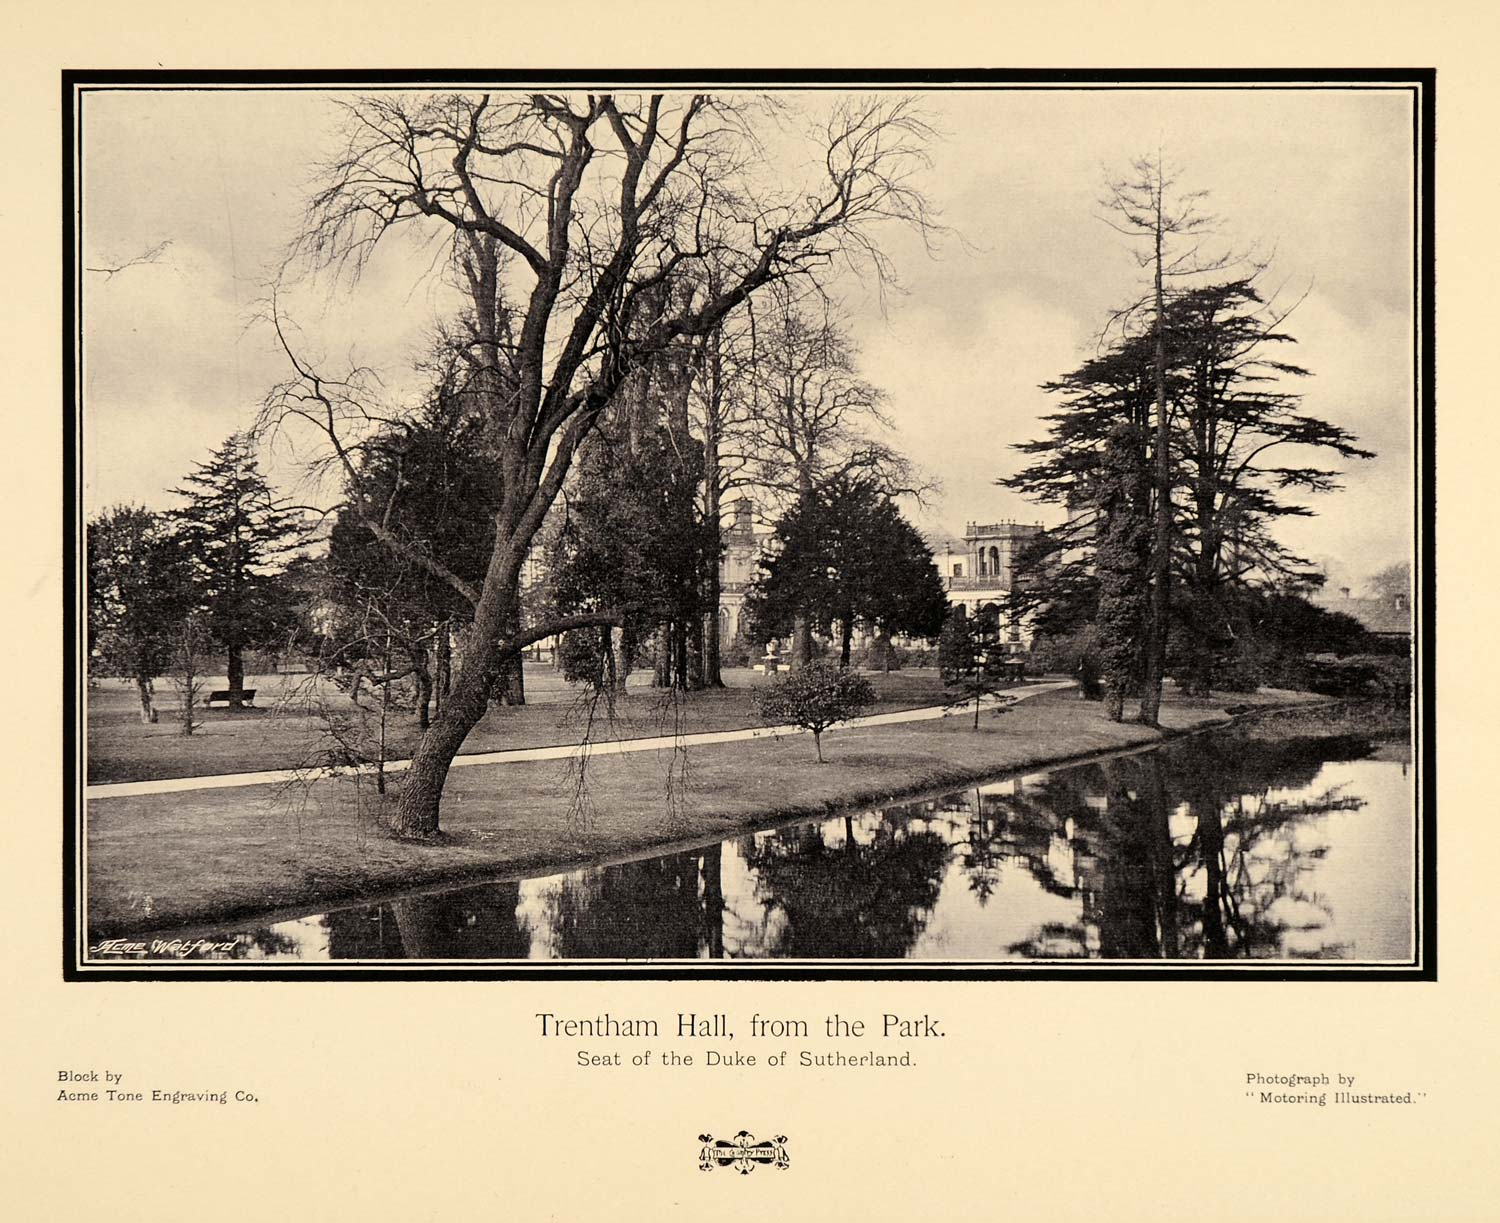 1905 Print Trentham Hall House Building Duke of Sutherland England Trees PNR8